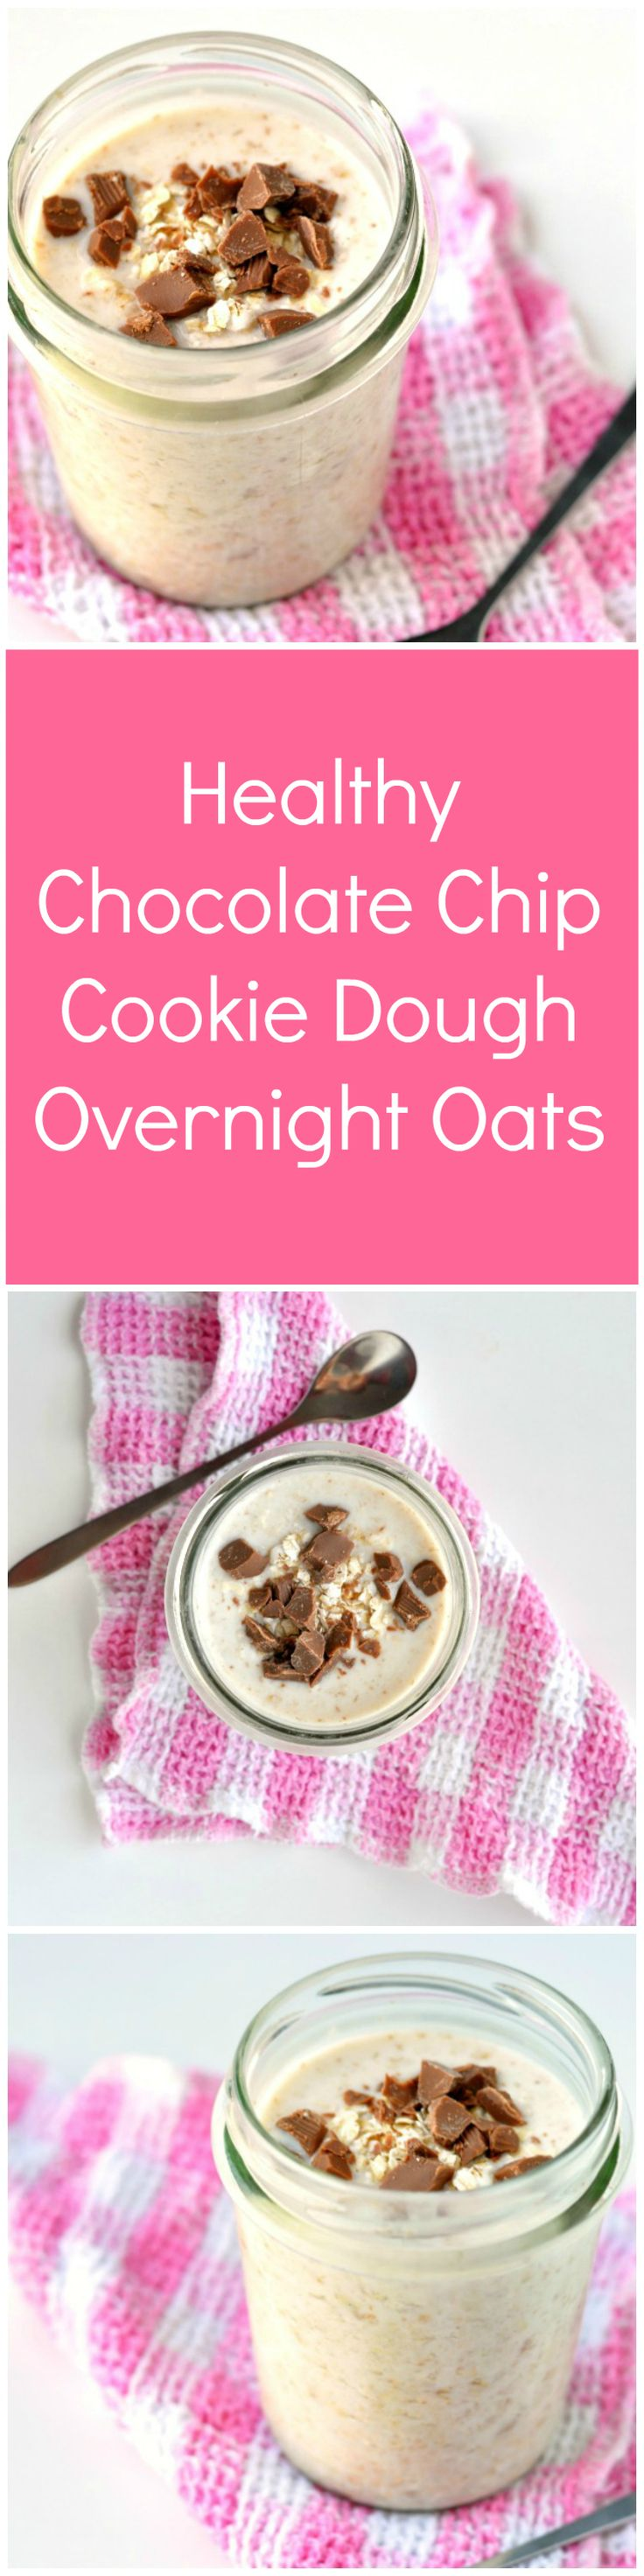 Healthy Chocolate Chip Cookie Dough Overnight Oats Recipe | Healthy Oatmeal Recipes | Healthy Overnight Oats Recipes | Healthy Breakfast Recipes